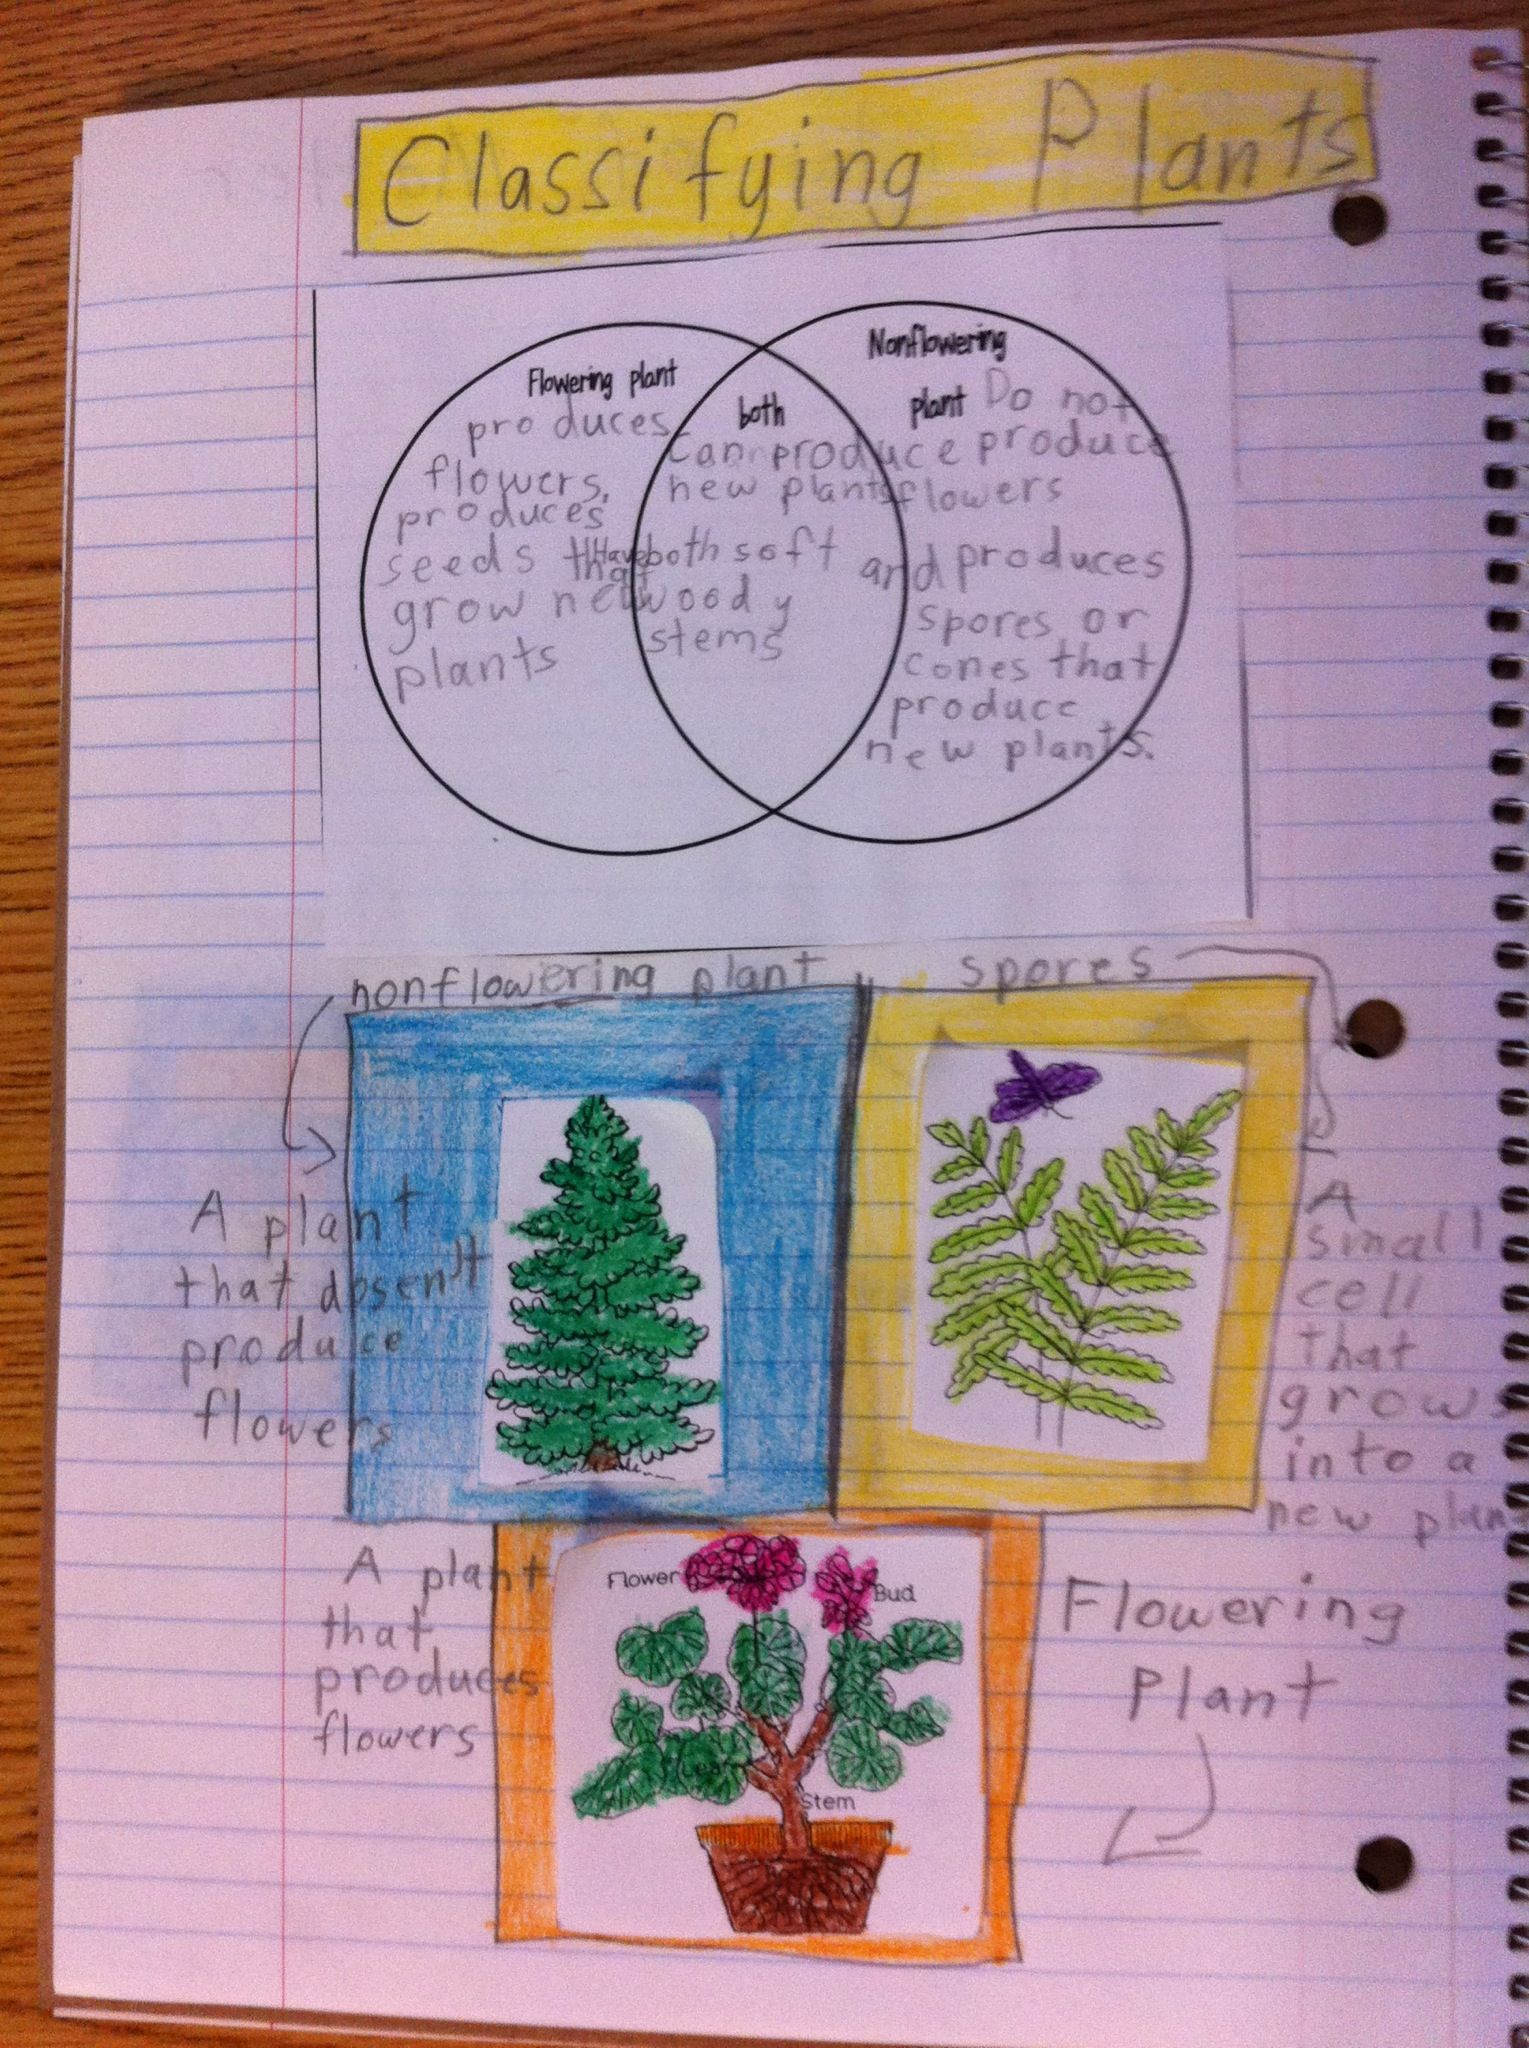 Classifying Plants Interactive